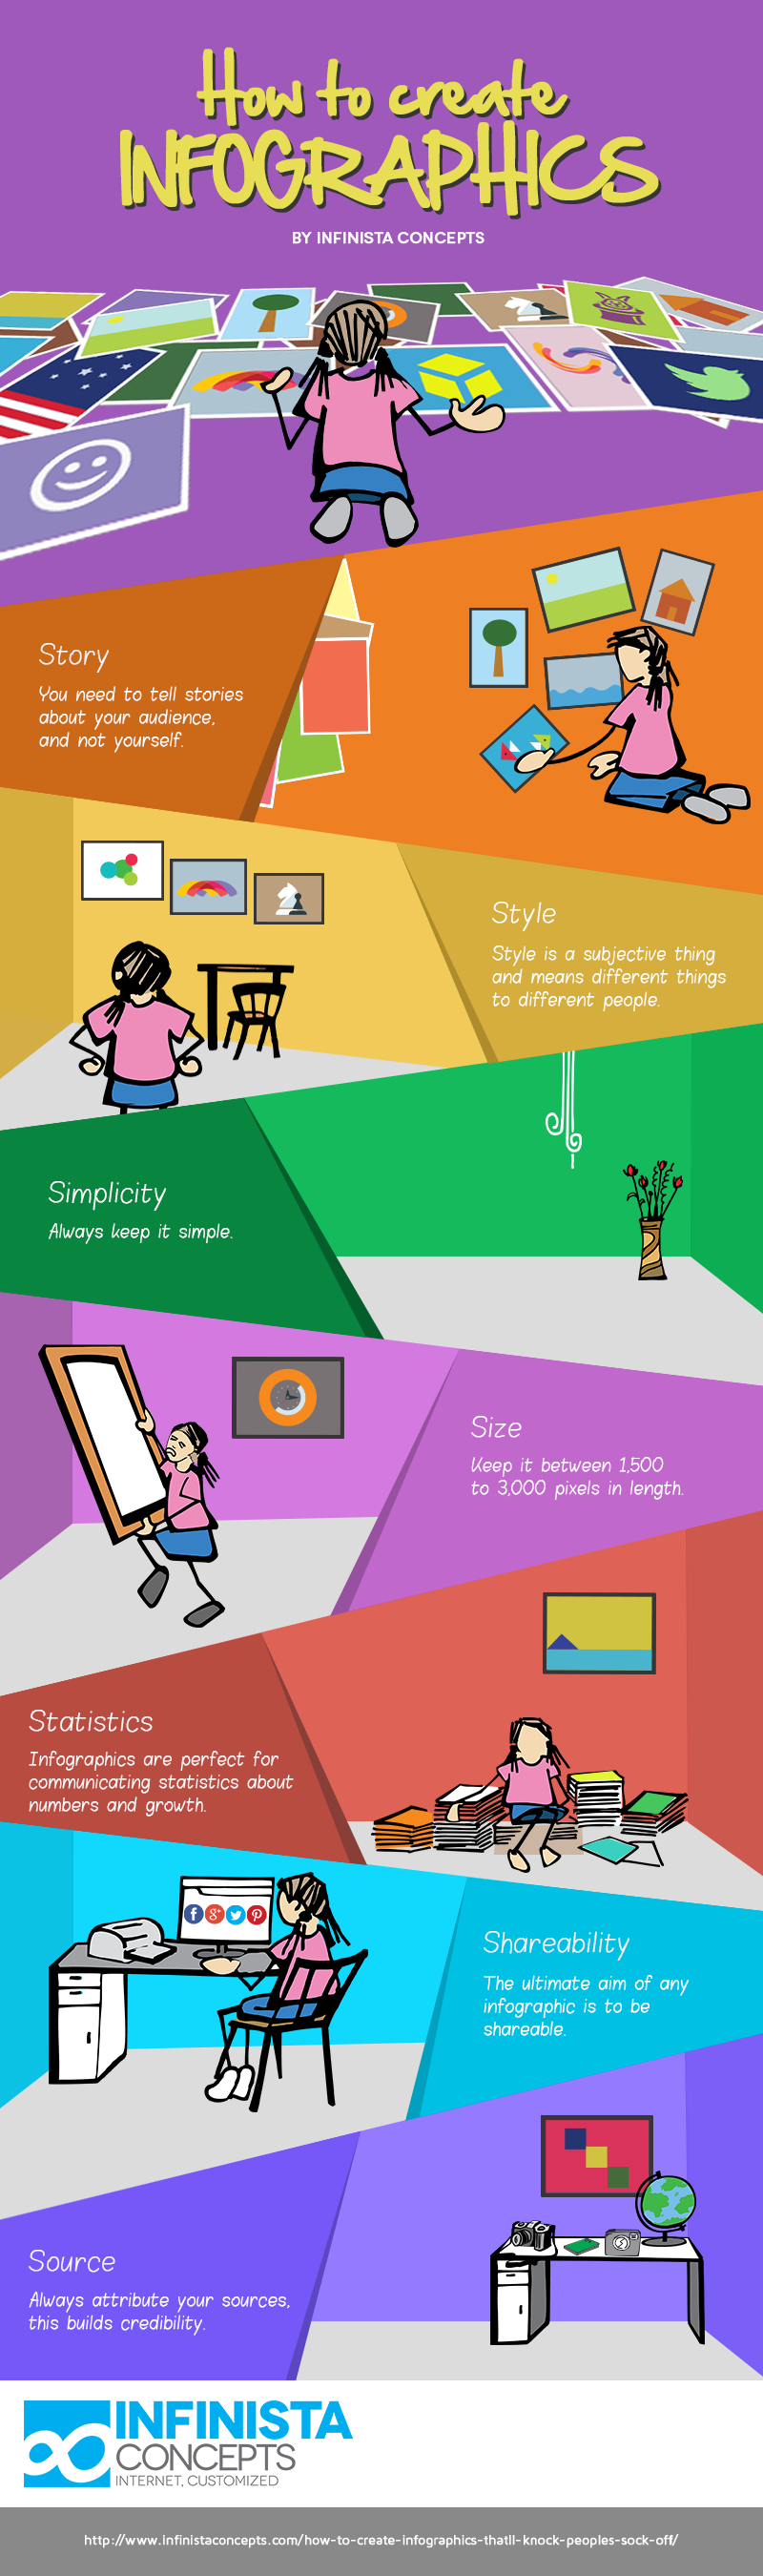 How To Create Infographics [Infographic]